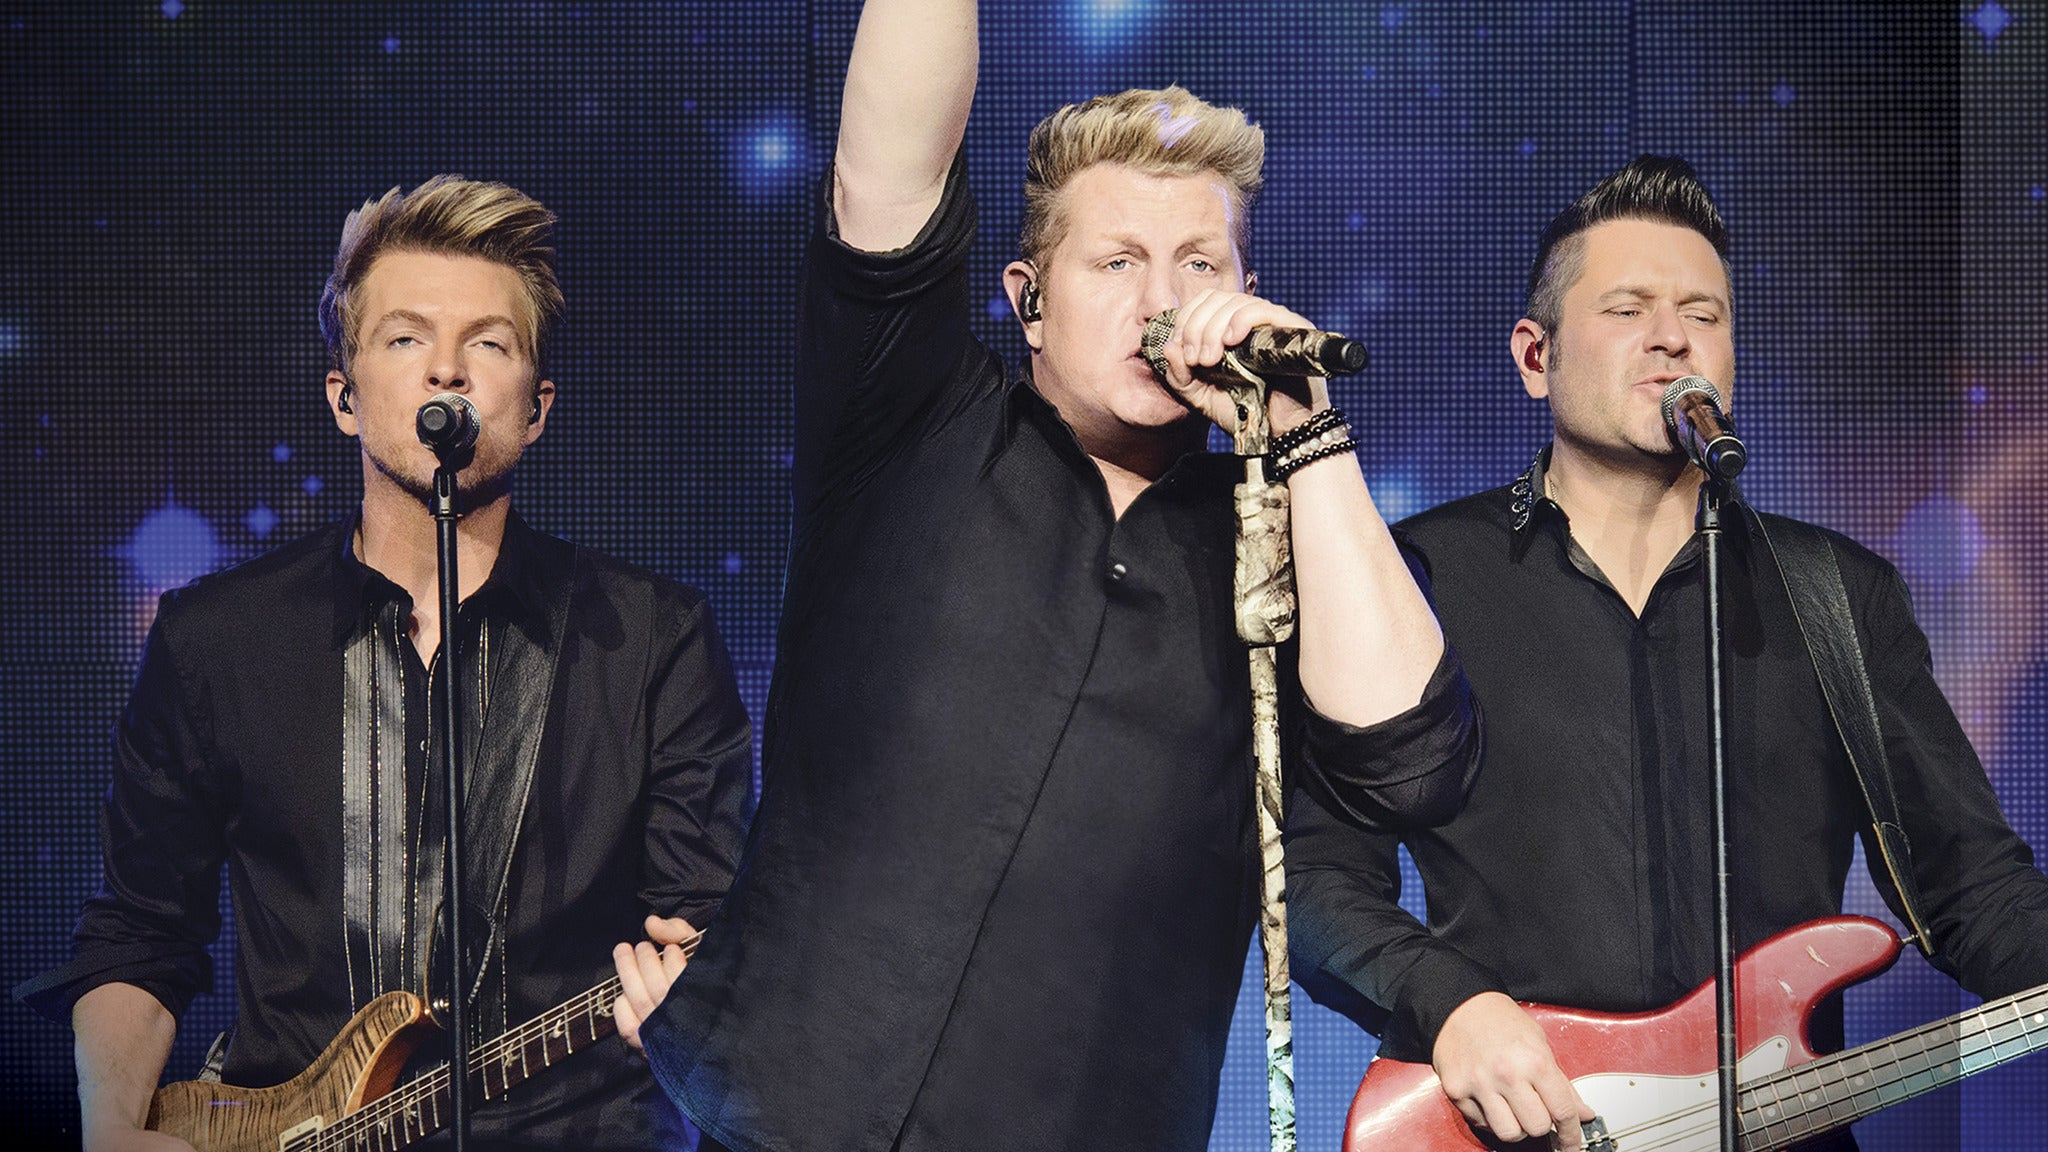 Rascal Flatts - Rhythm & Roots Tour at Tallahassee Pavilion